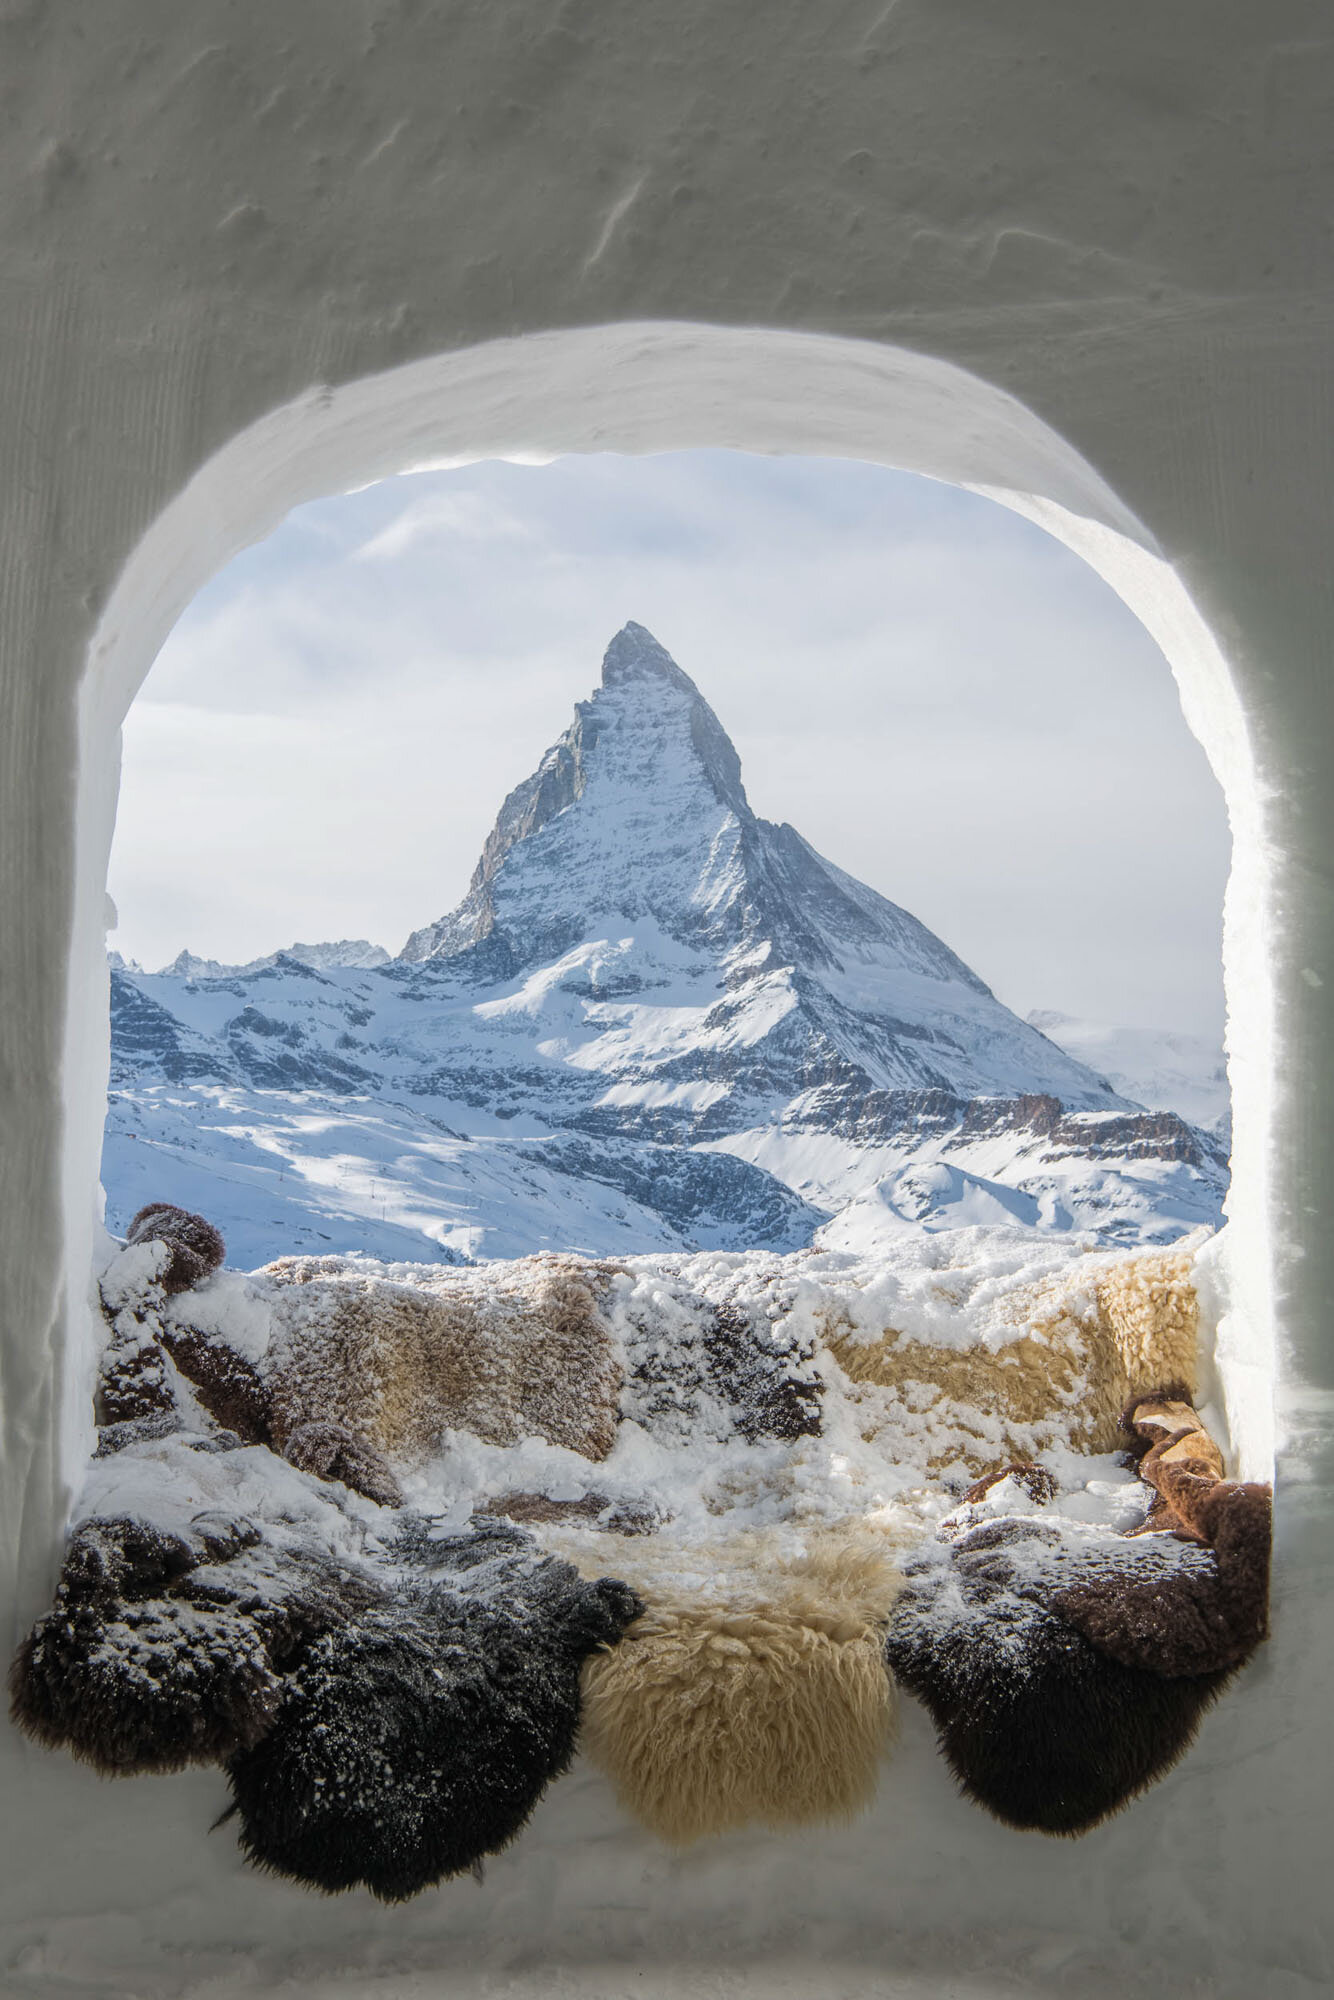 Looking through an igloo window to the Matterhorn. Copyright by: Switzerland Tourism